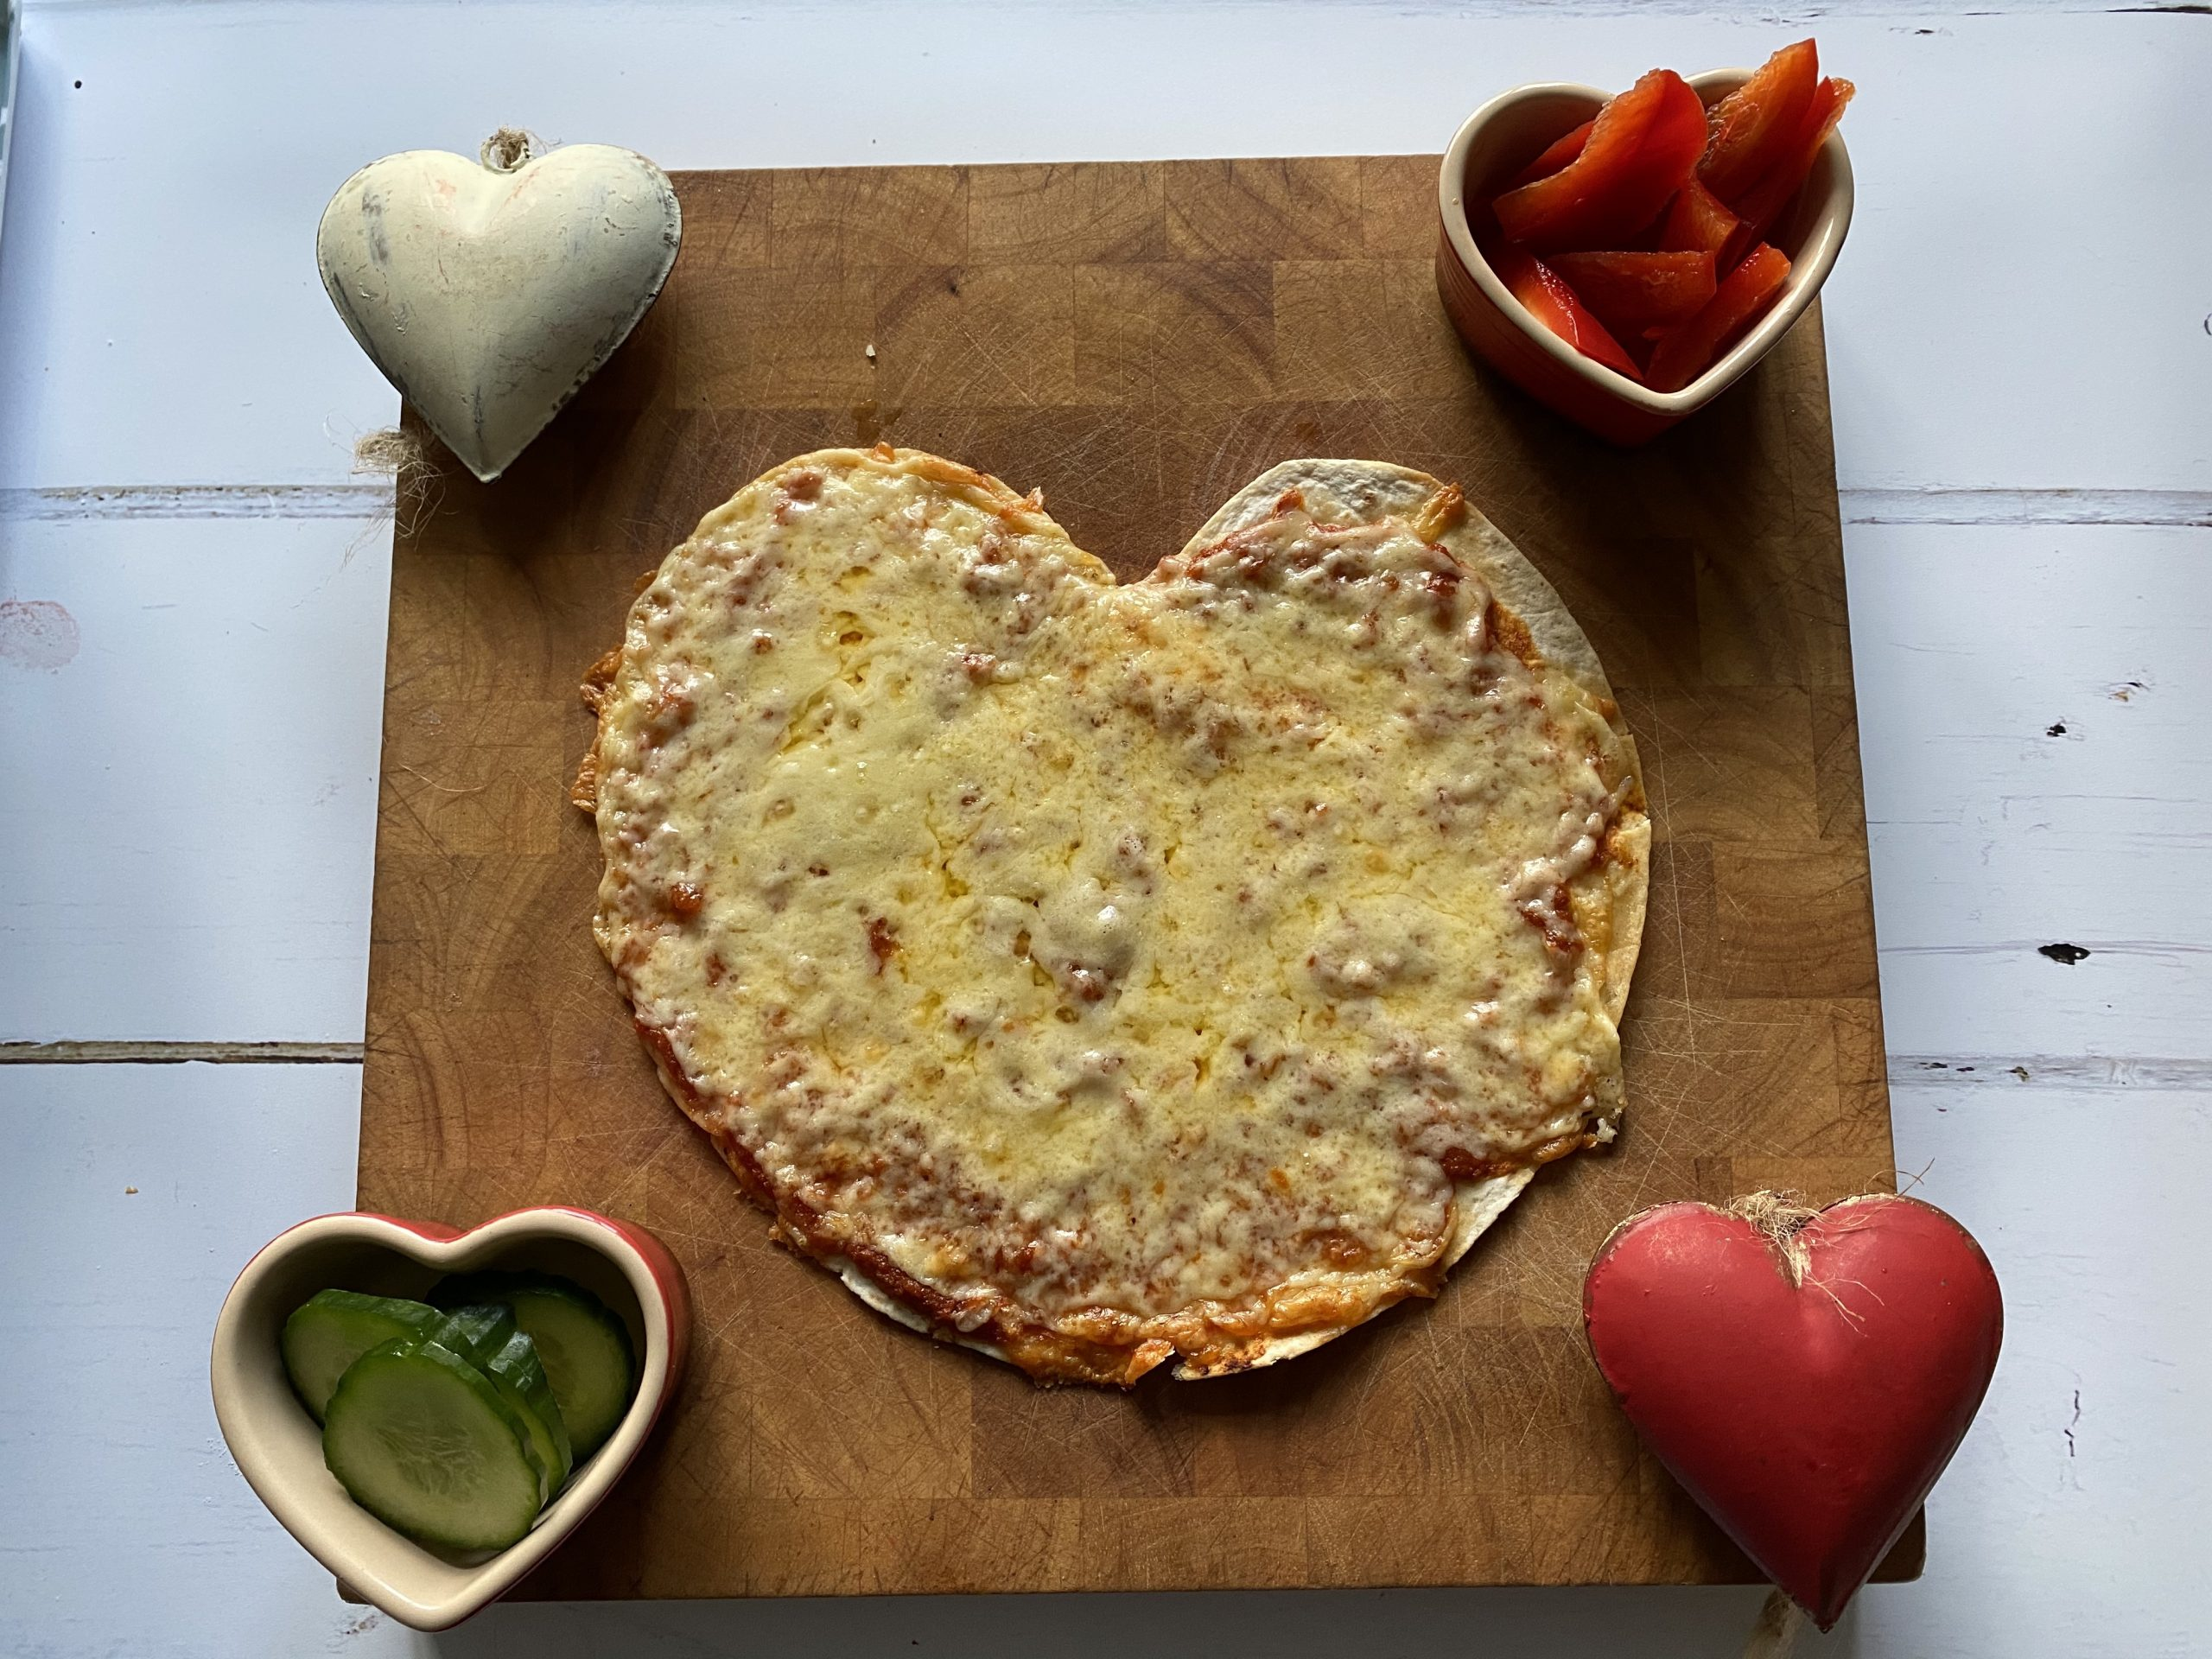 Homemade tortilla pizza heart shaped for Valentine's Day